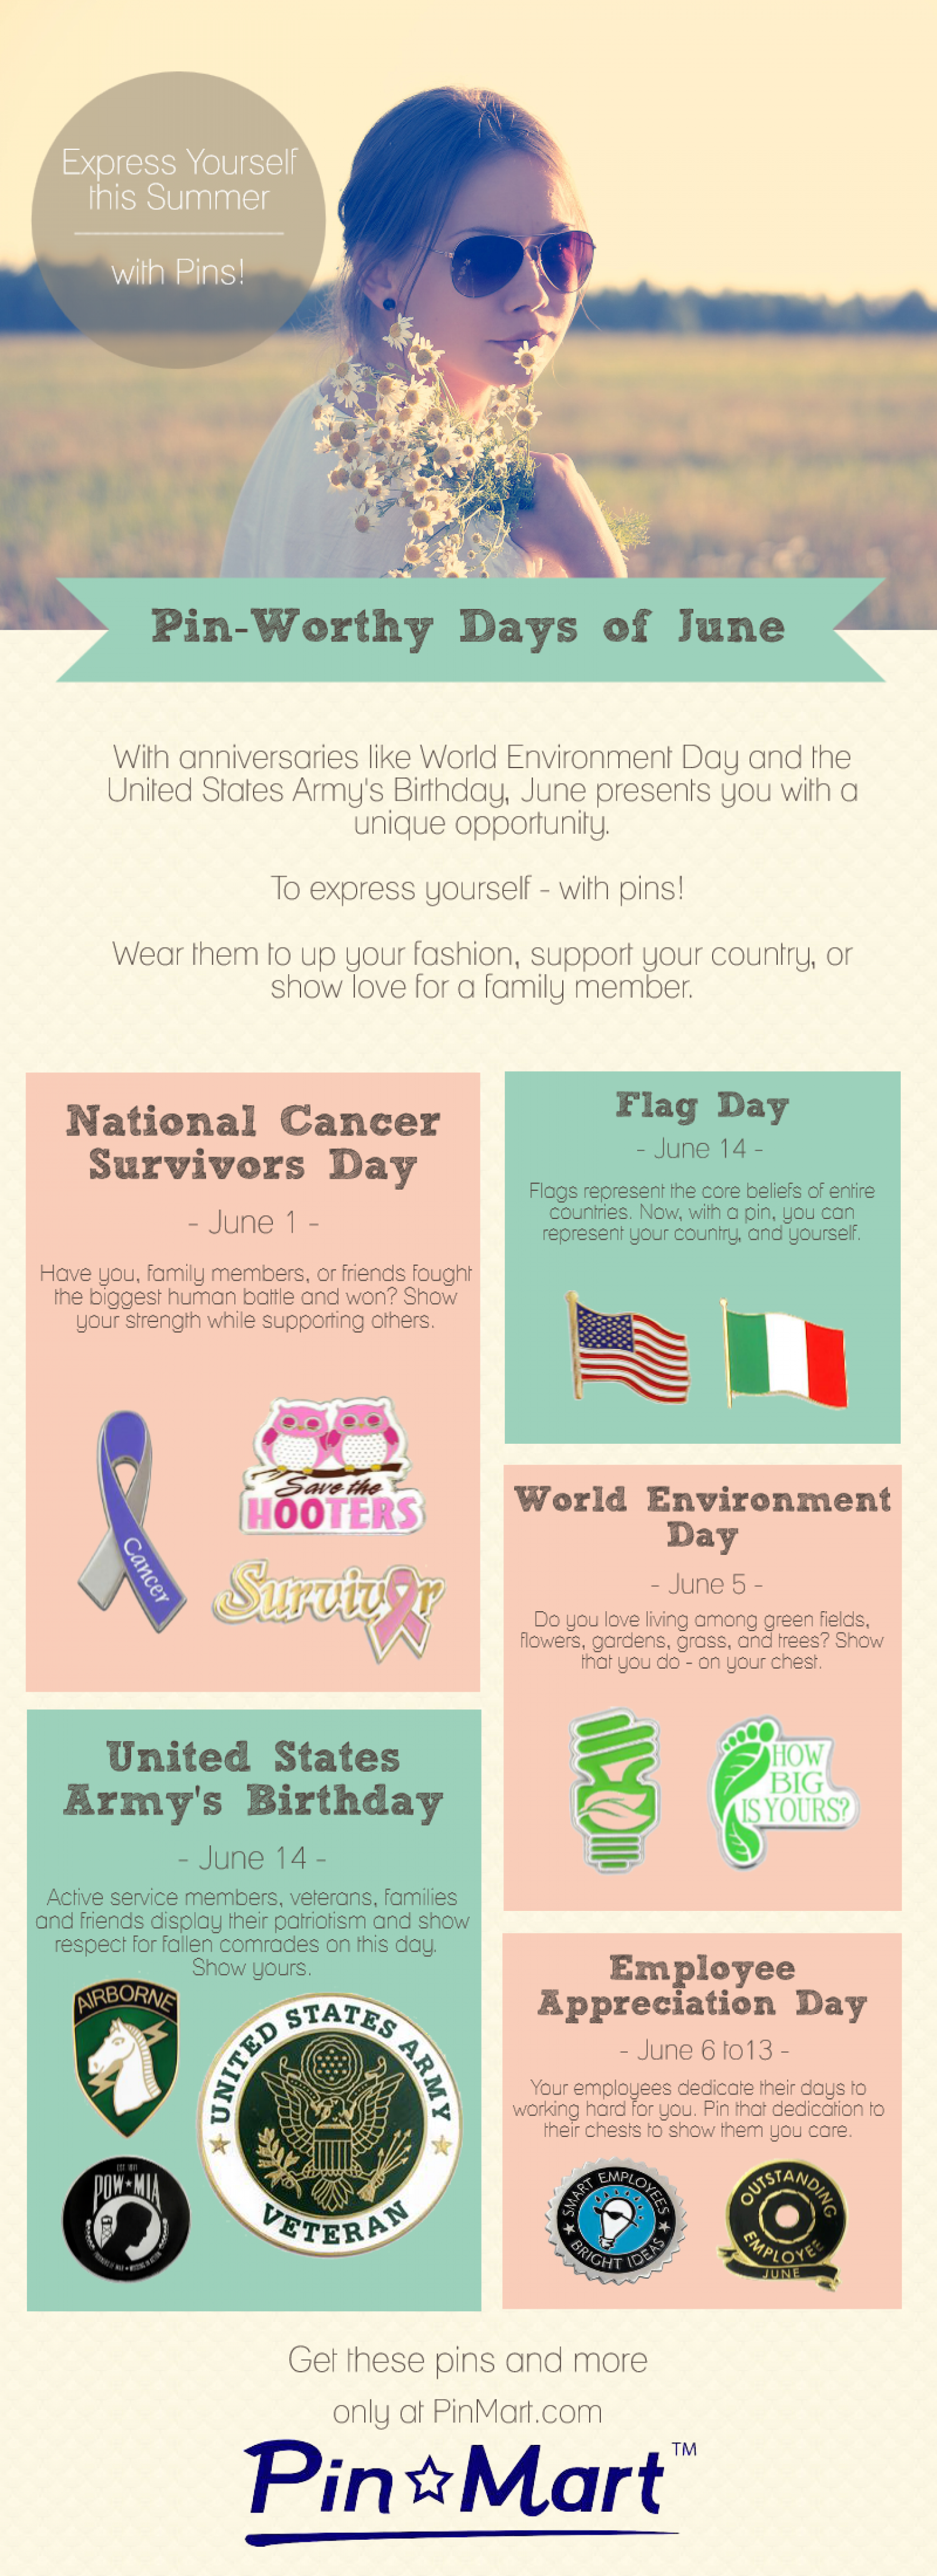 Pin-Worthy Days of June Infographic